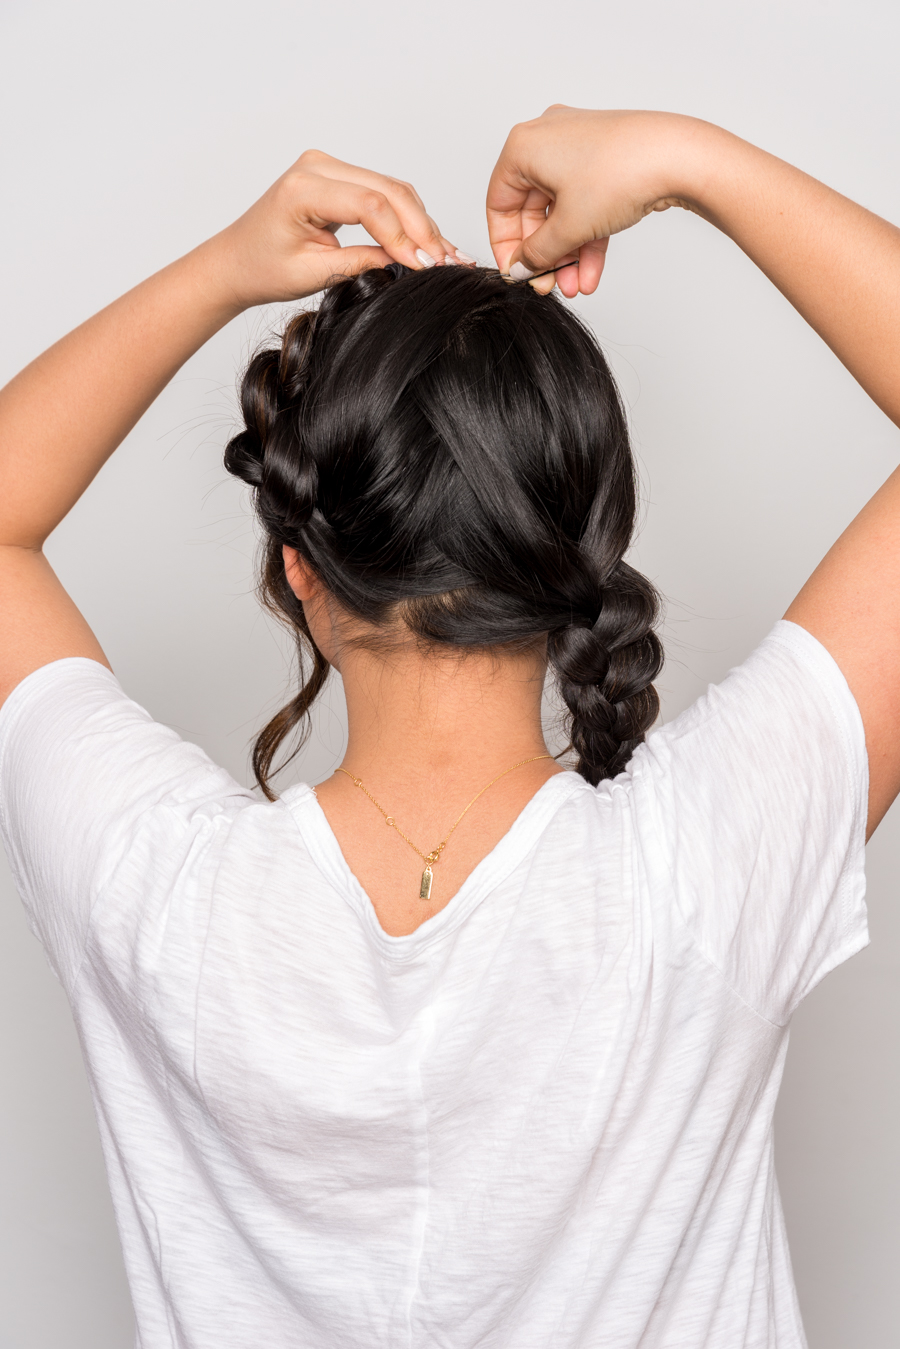 ROCK MAMA NYC LIFESTYLE BLOG - HOW TO MAKE A EASY BRAIDED HEADBAND